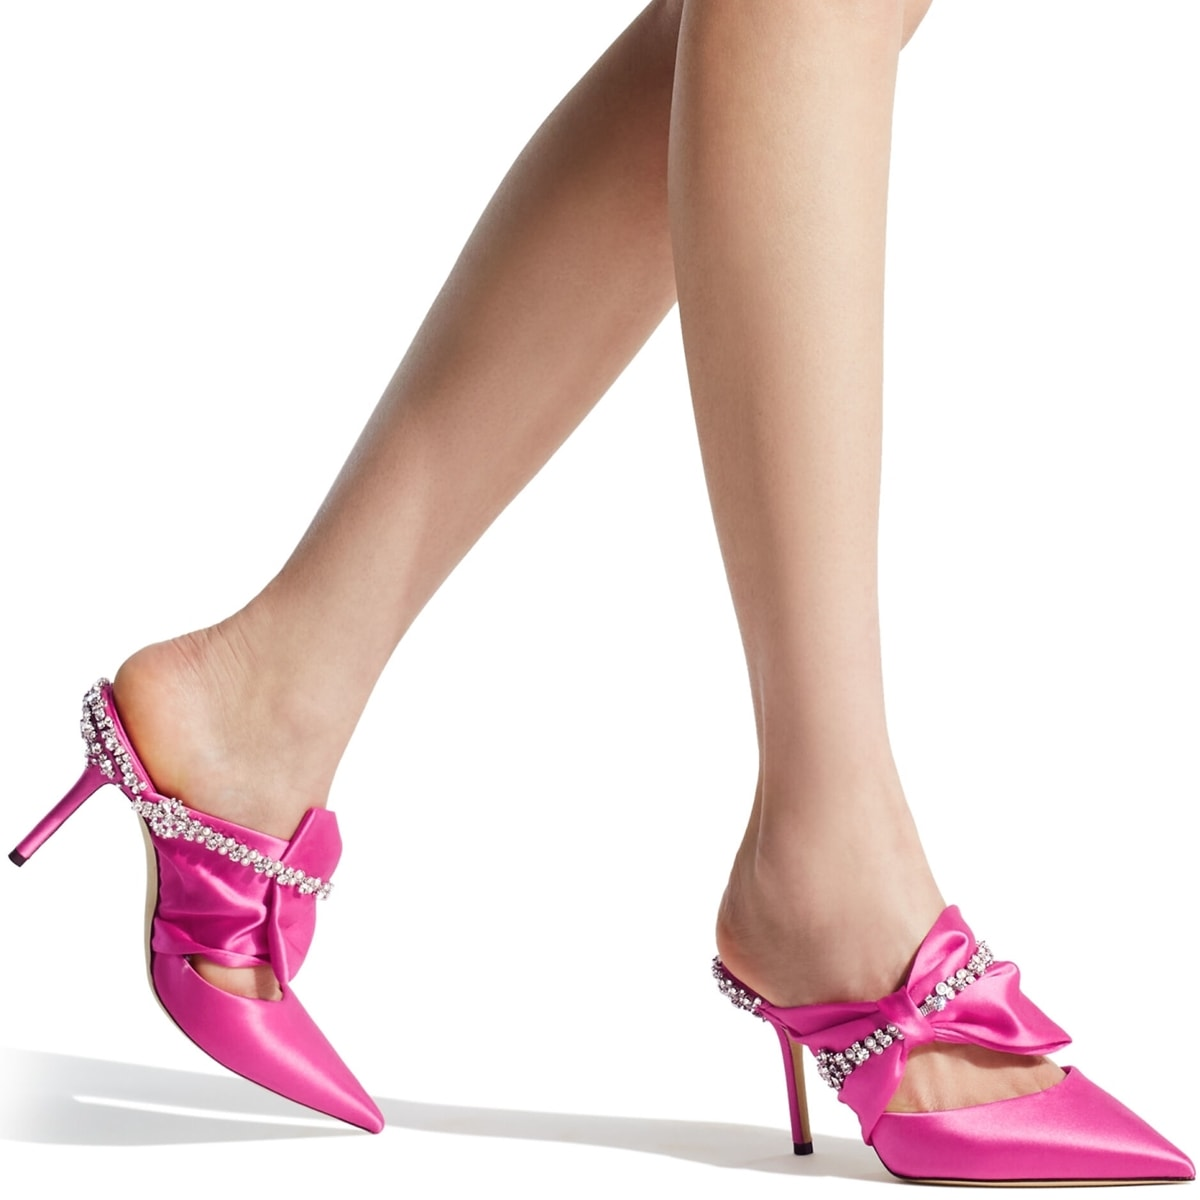 These pink satin Nina mules feature an elegant pleated bow accented by an embroidered chain of crystals